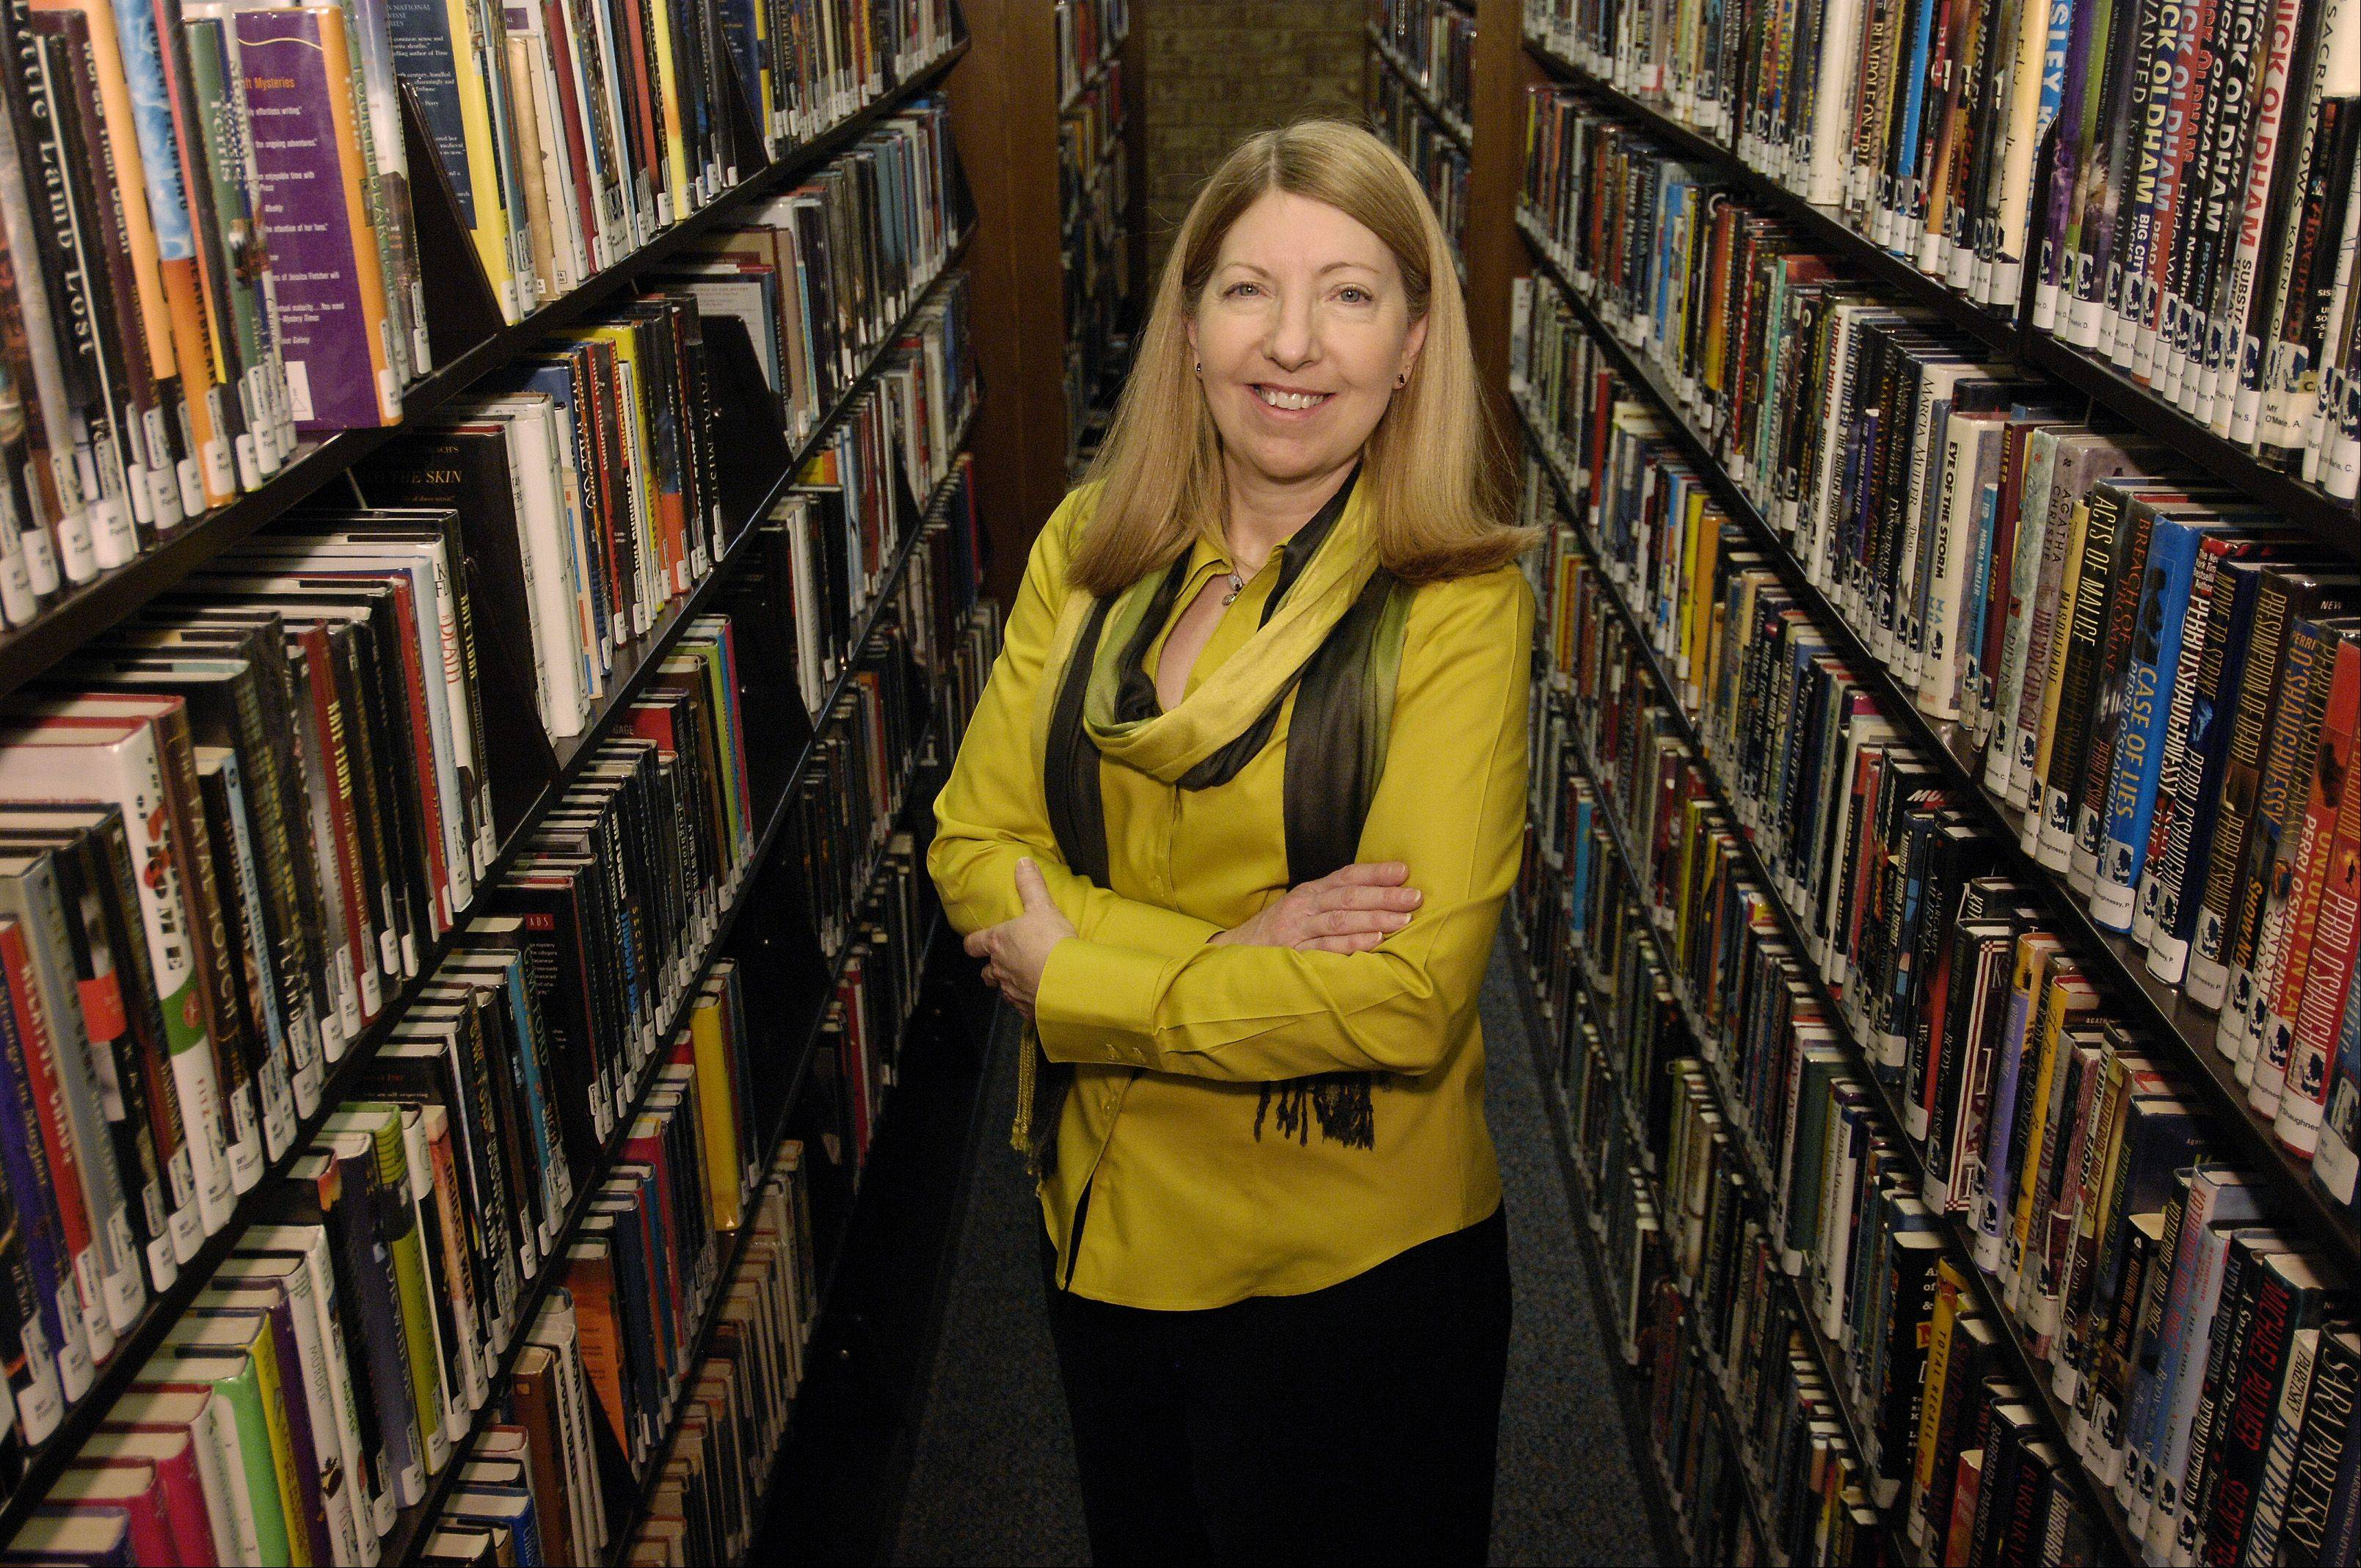 New Carol Stream Library Director Susan Westgate, whose first day was Monday, says she wants to change the negative perception some may have of the library.